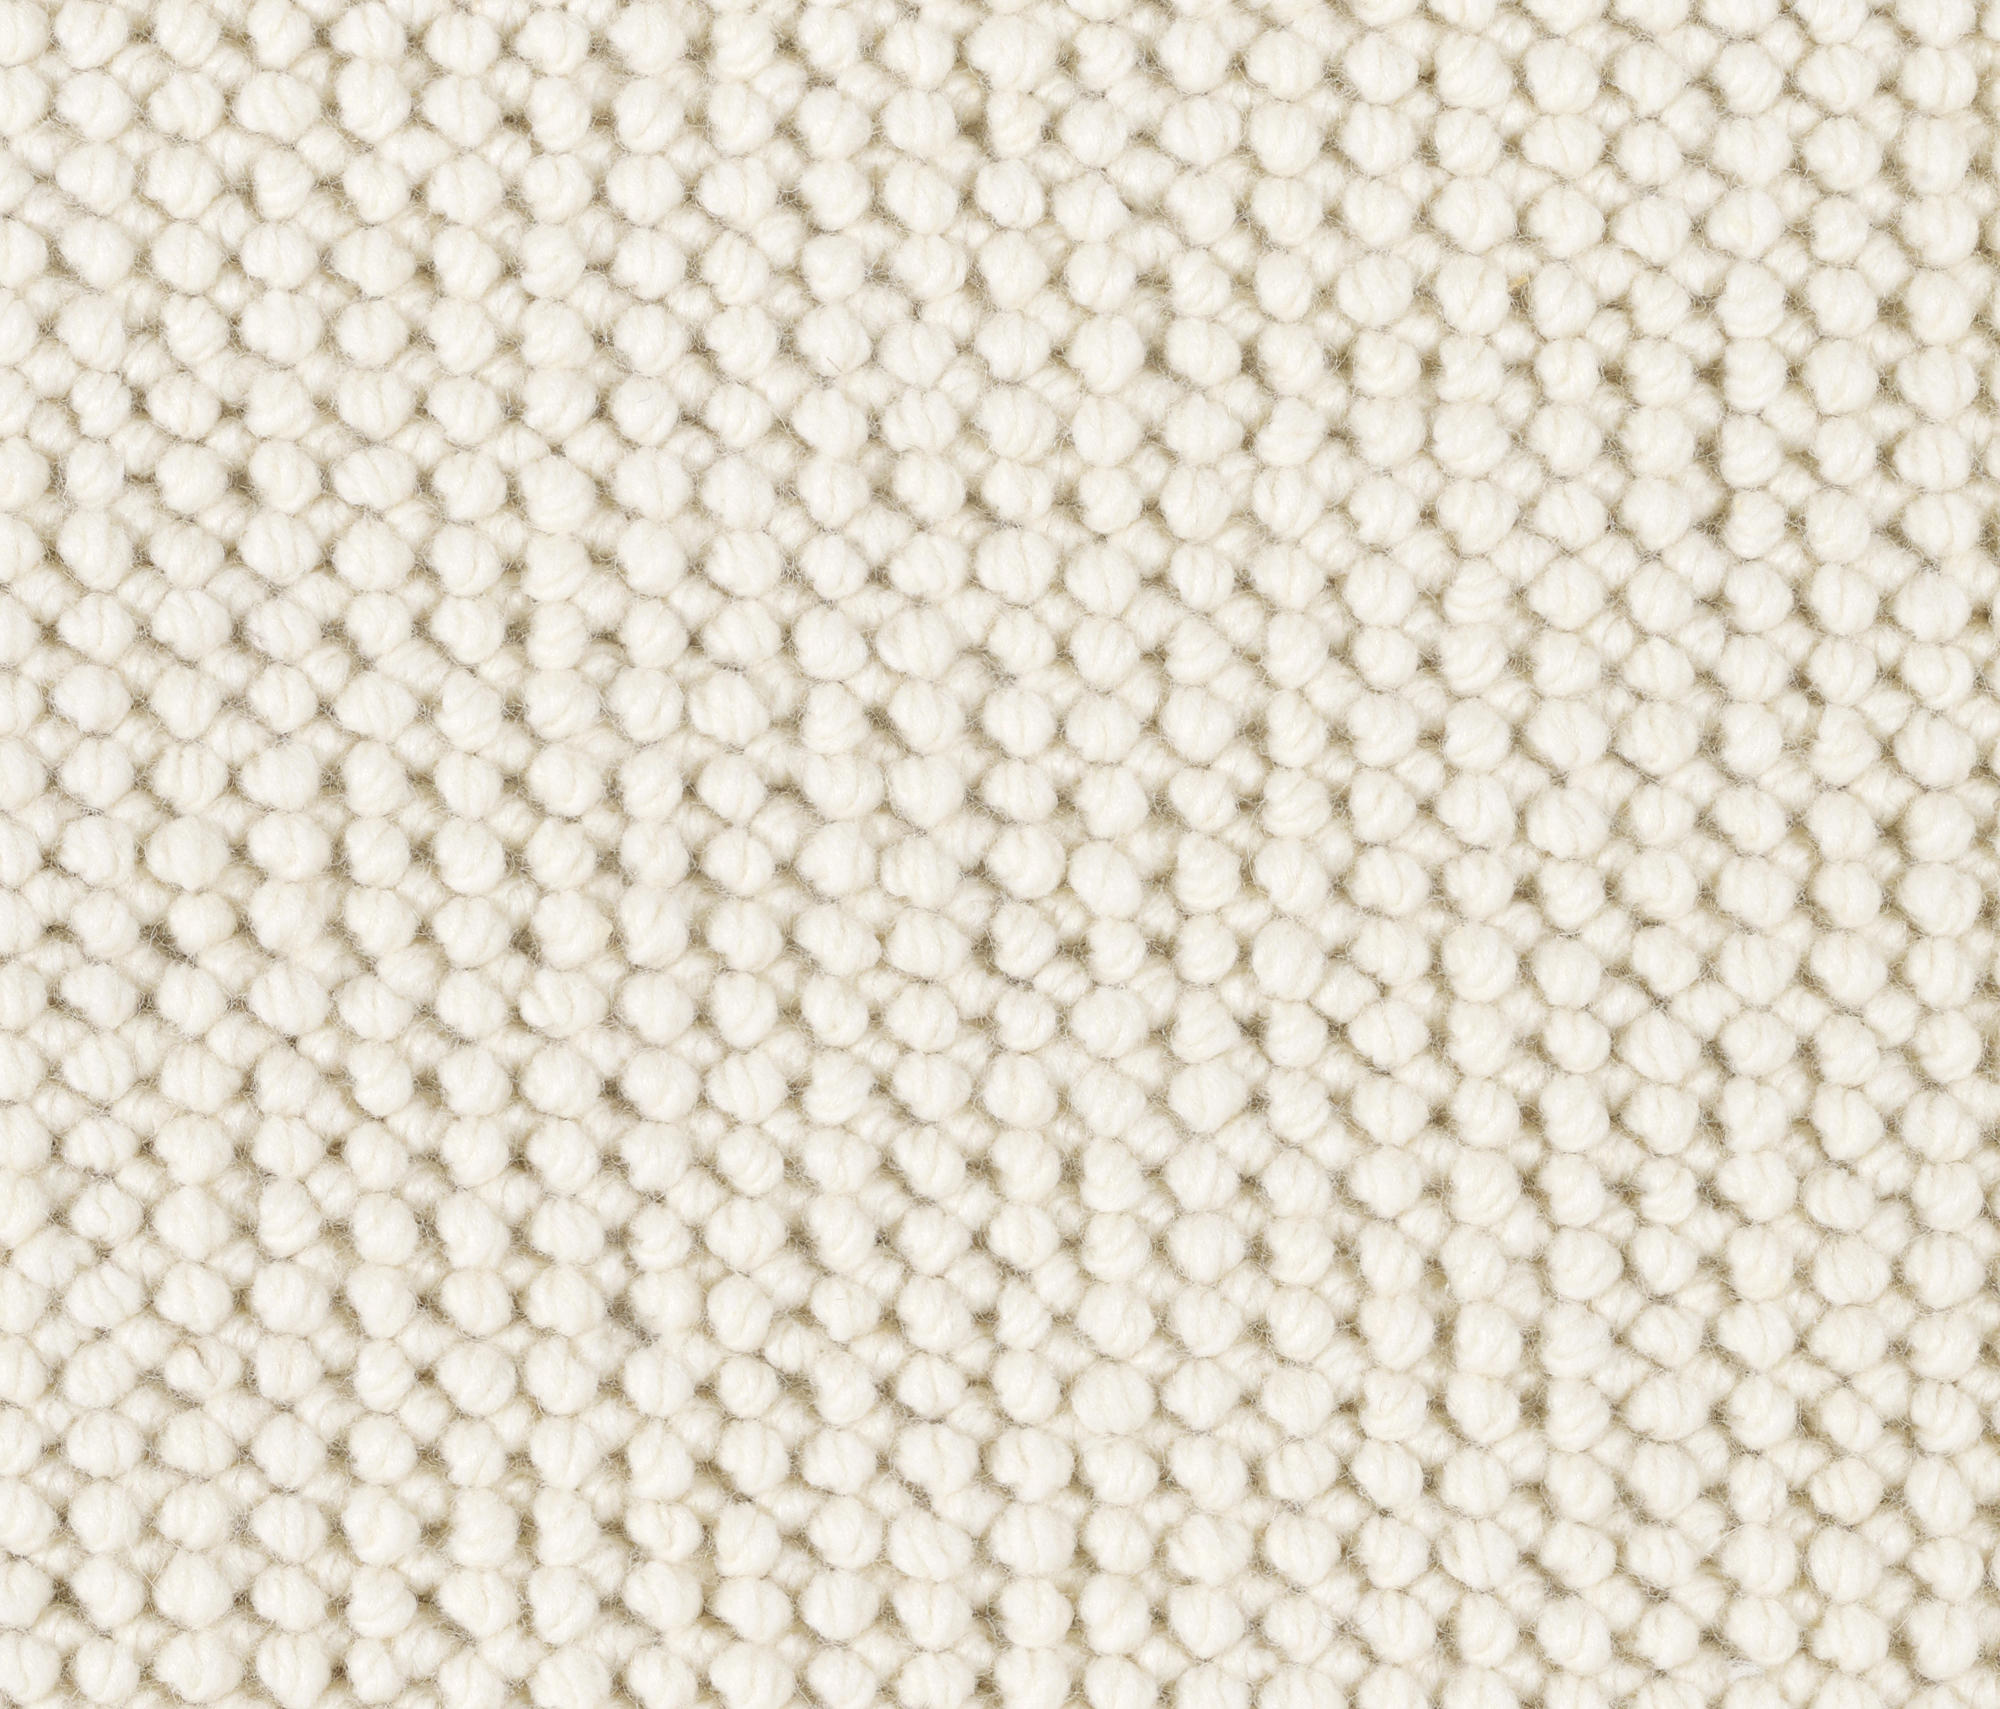 Pearl Rugs From Best Wool Carpets Architonic